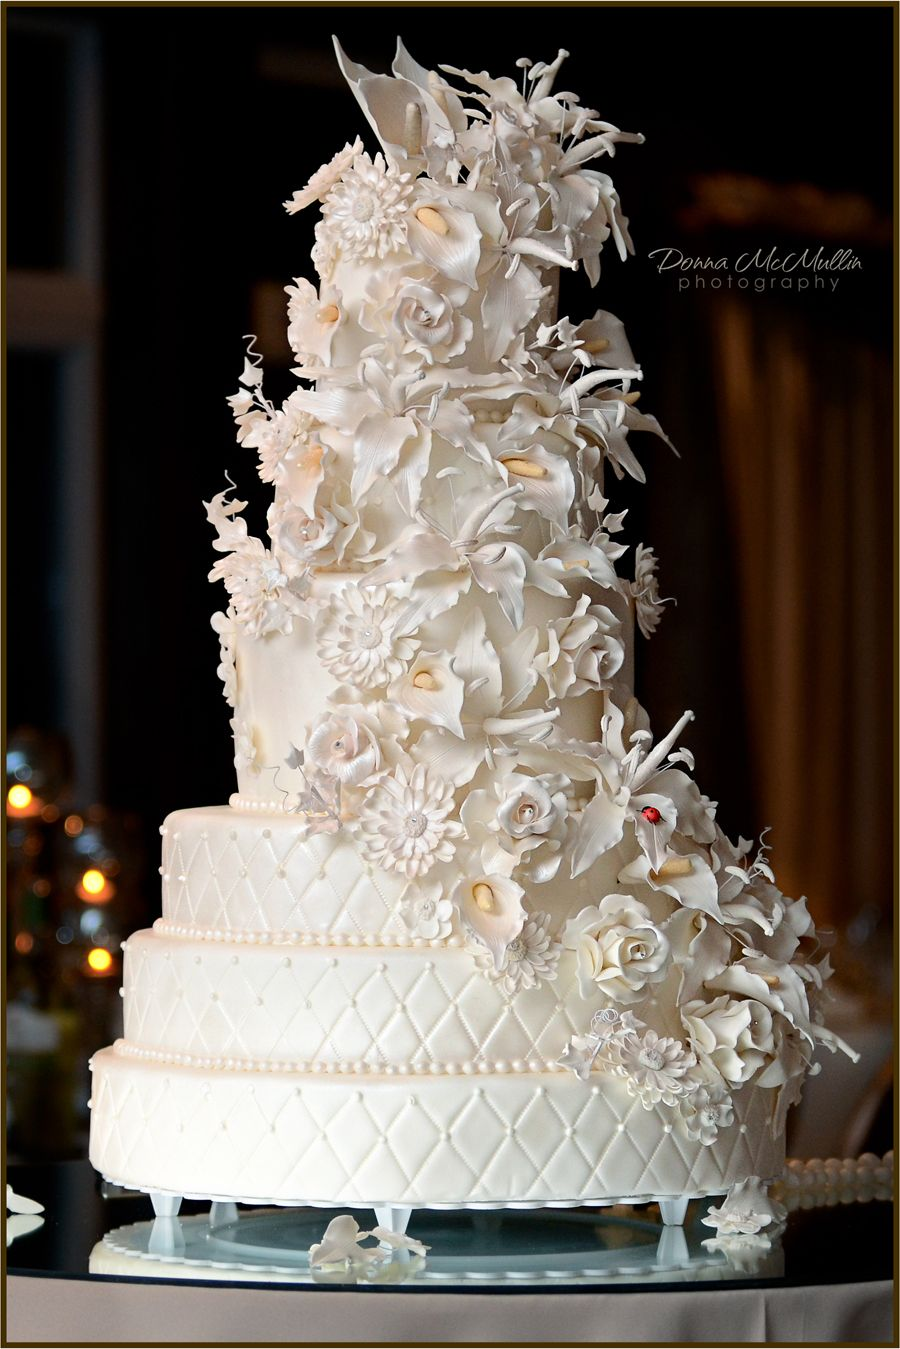 no sale tax latest wide varieties cake+boss+wedding+cakes+pictures | St. John's Cake Boss ...